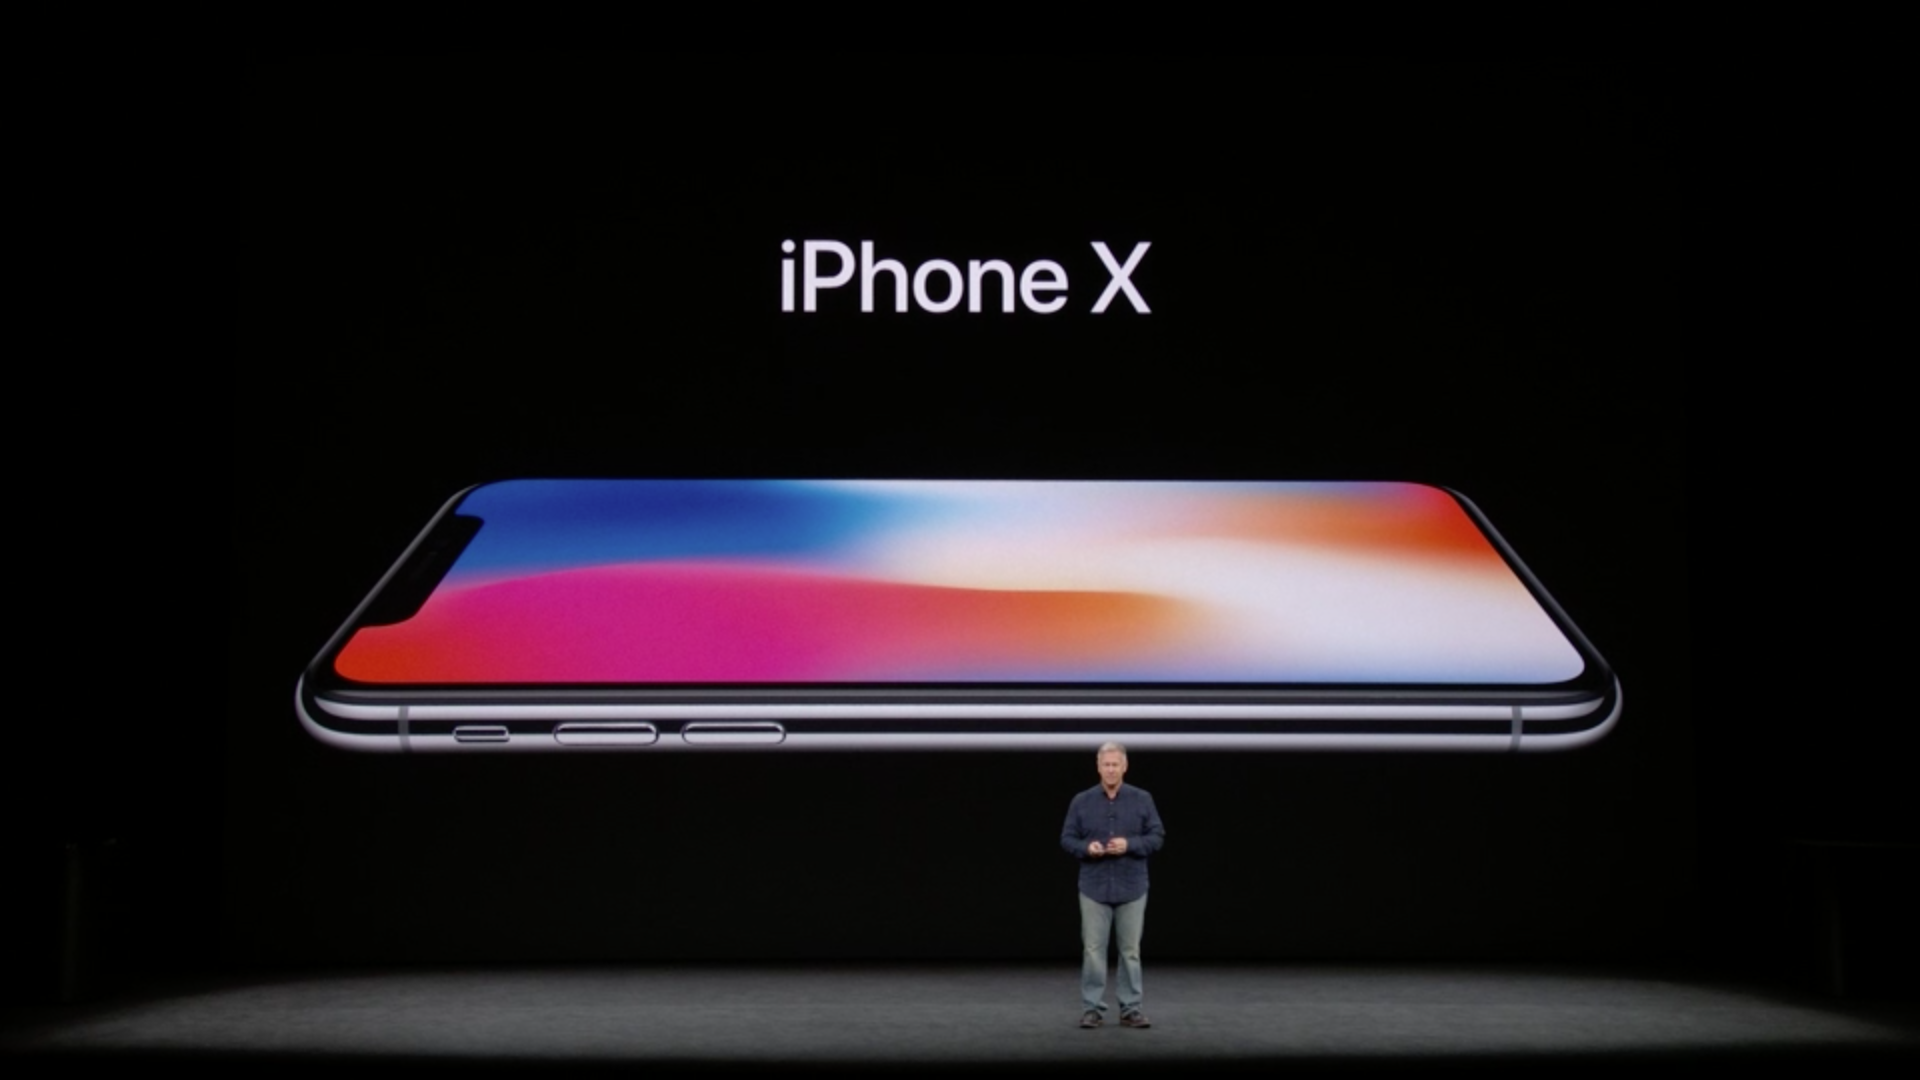 Apple Announces Its 10th Anniversary IPhone X. Here's What